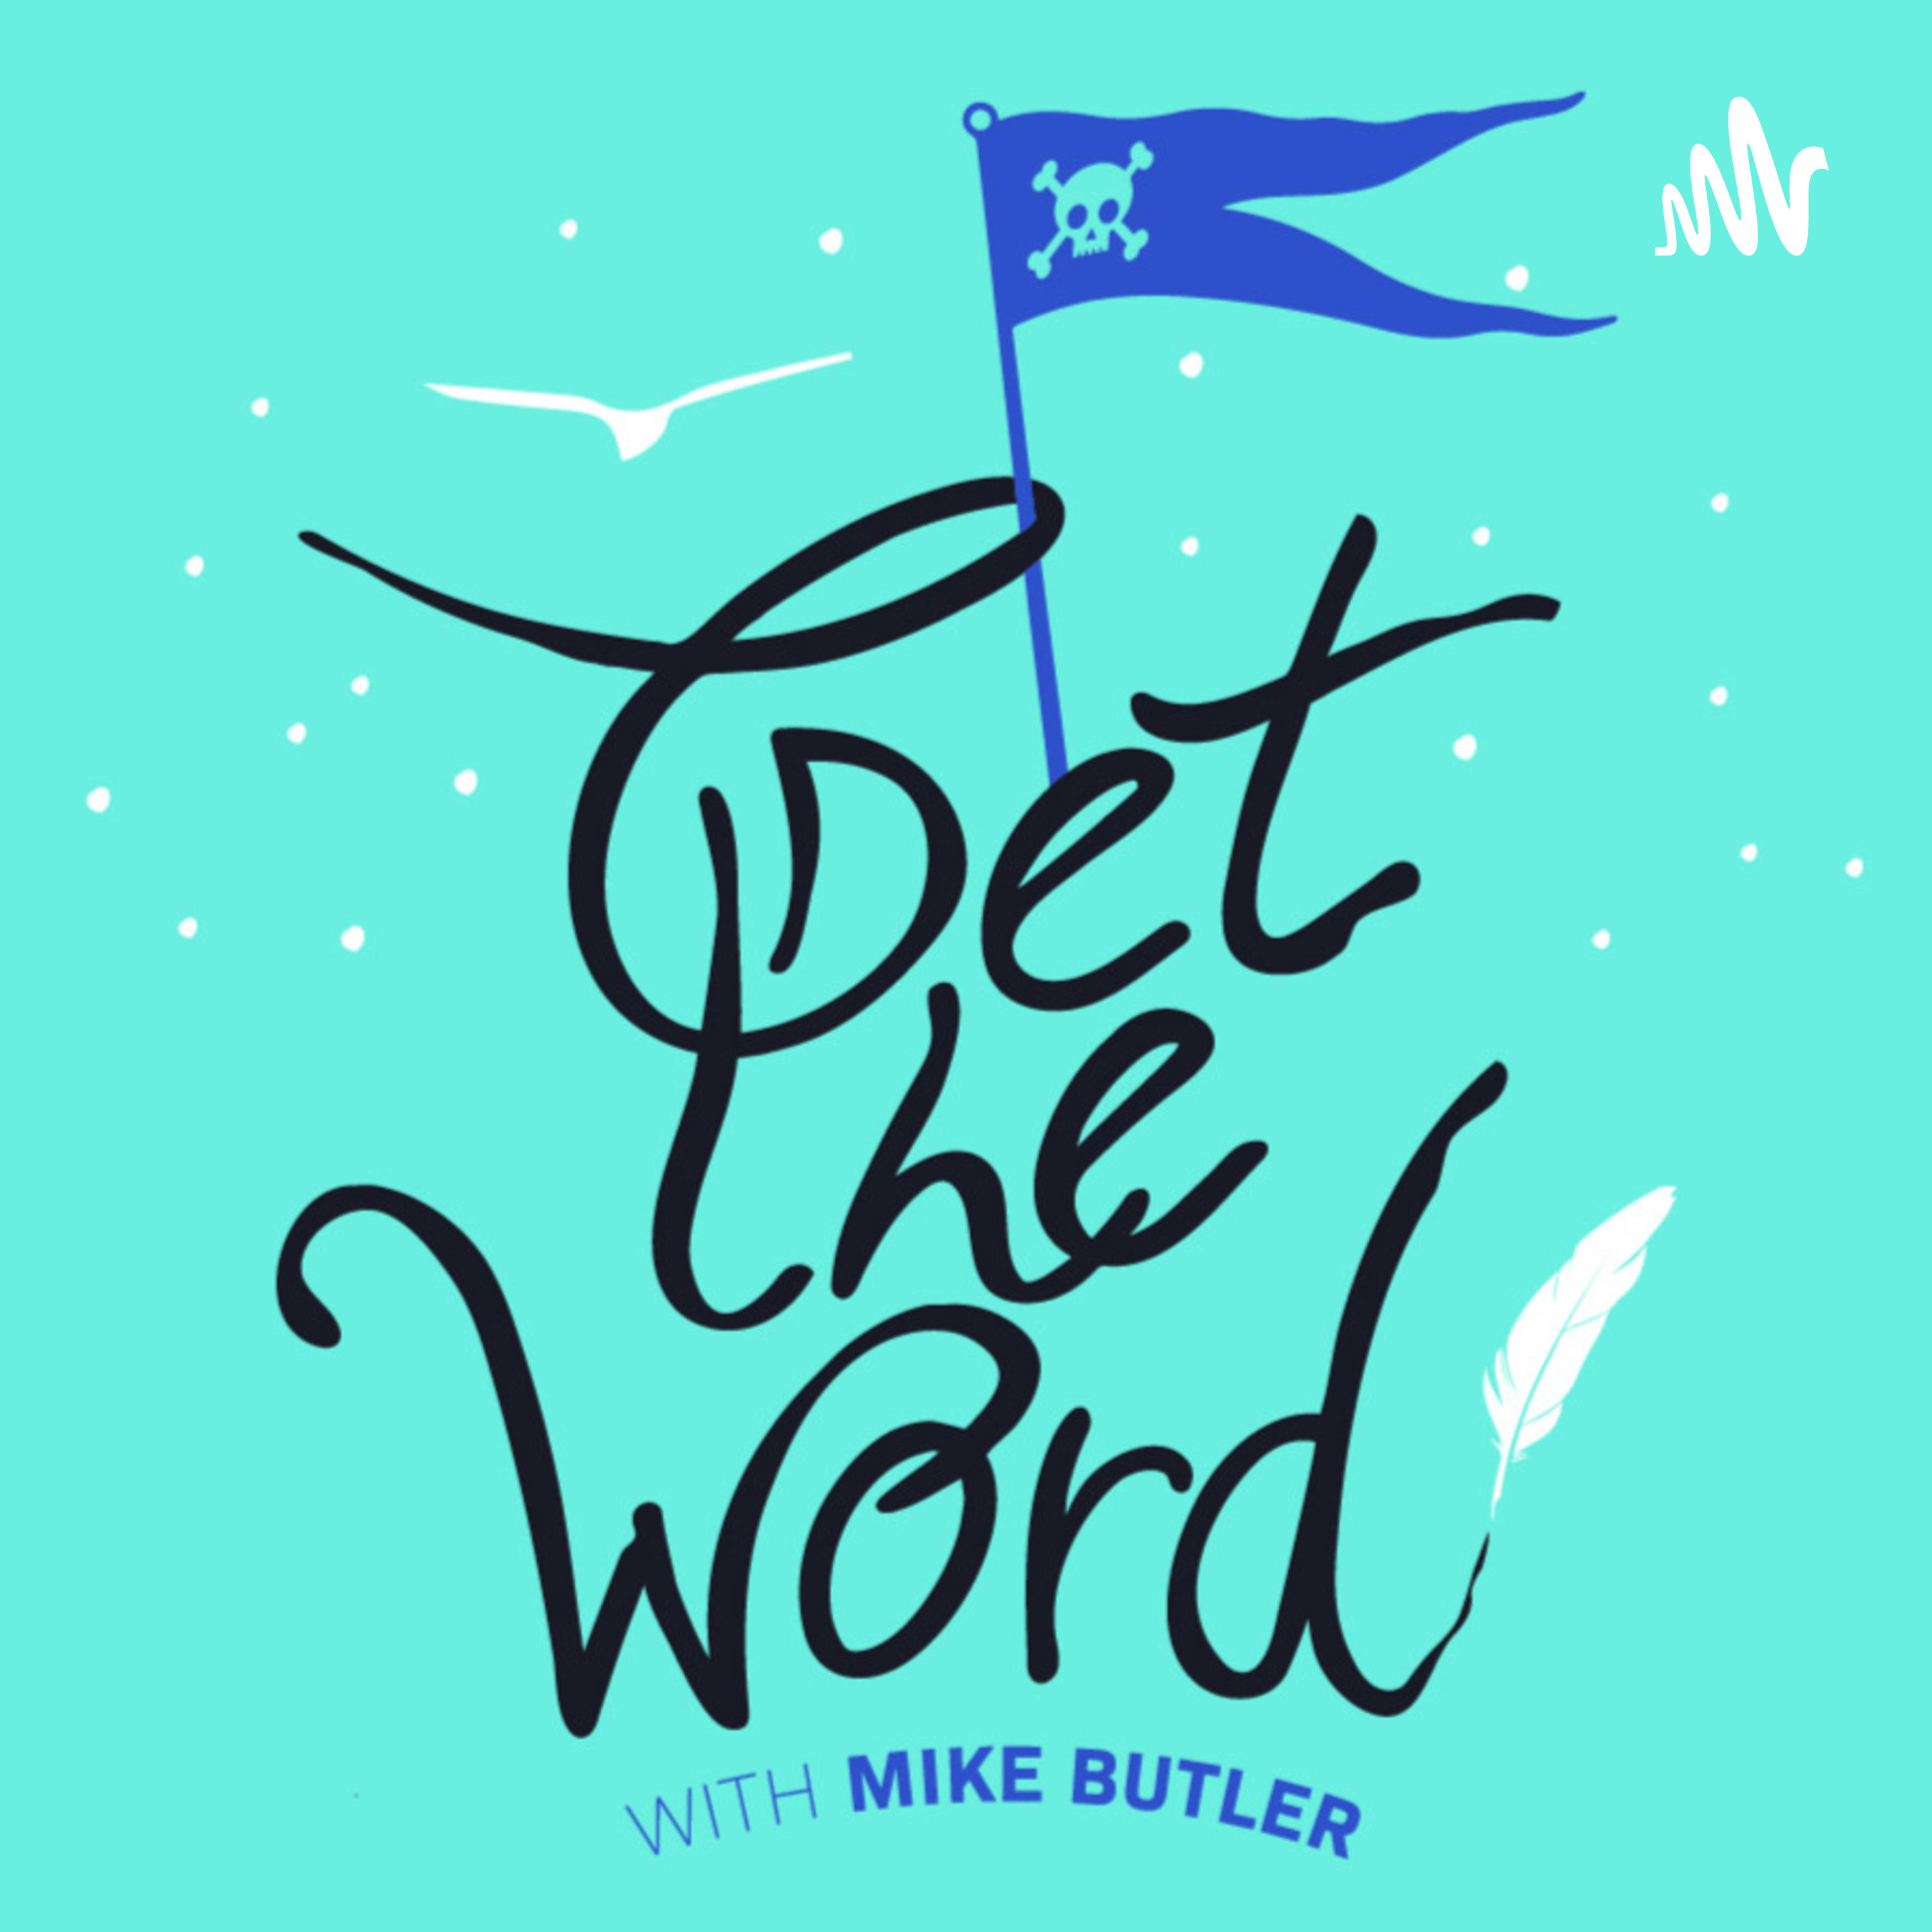 Get the Word! with Mike Butler